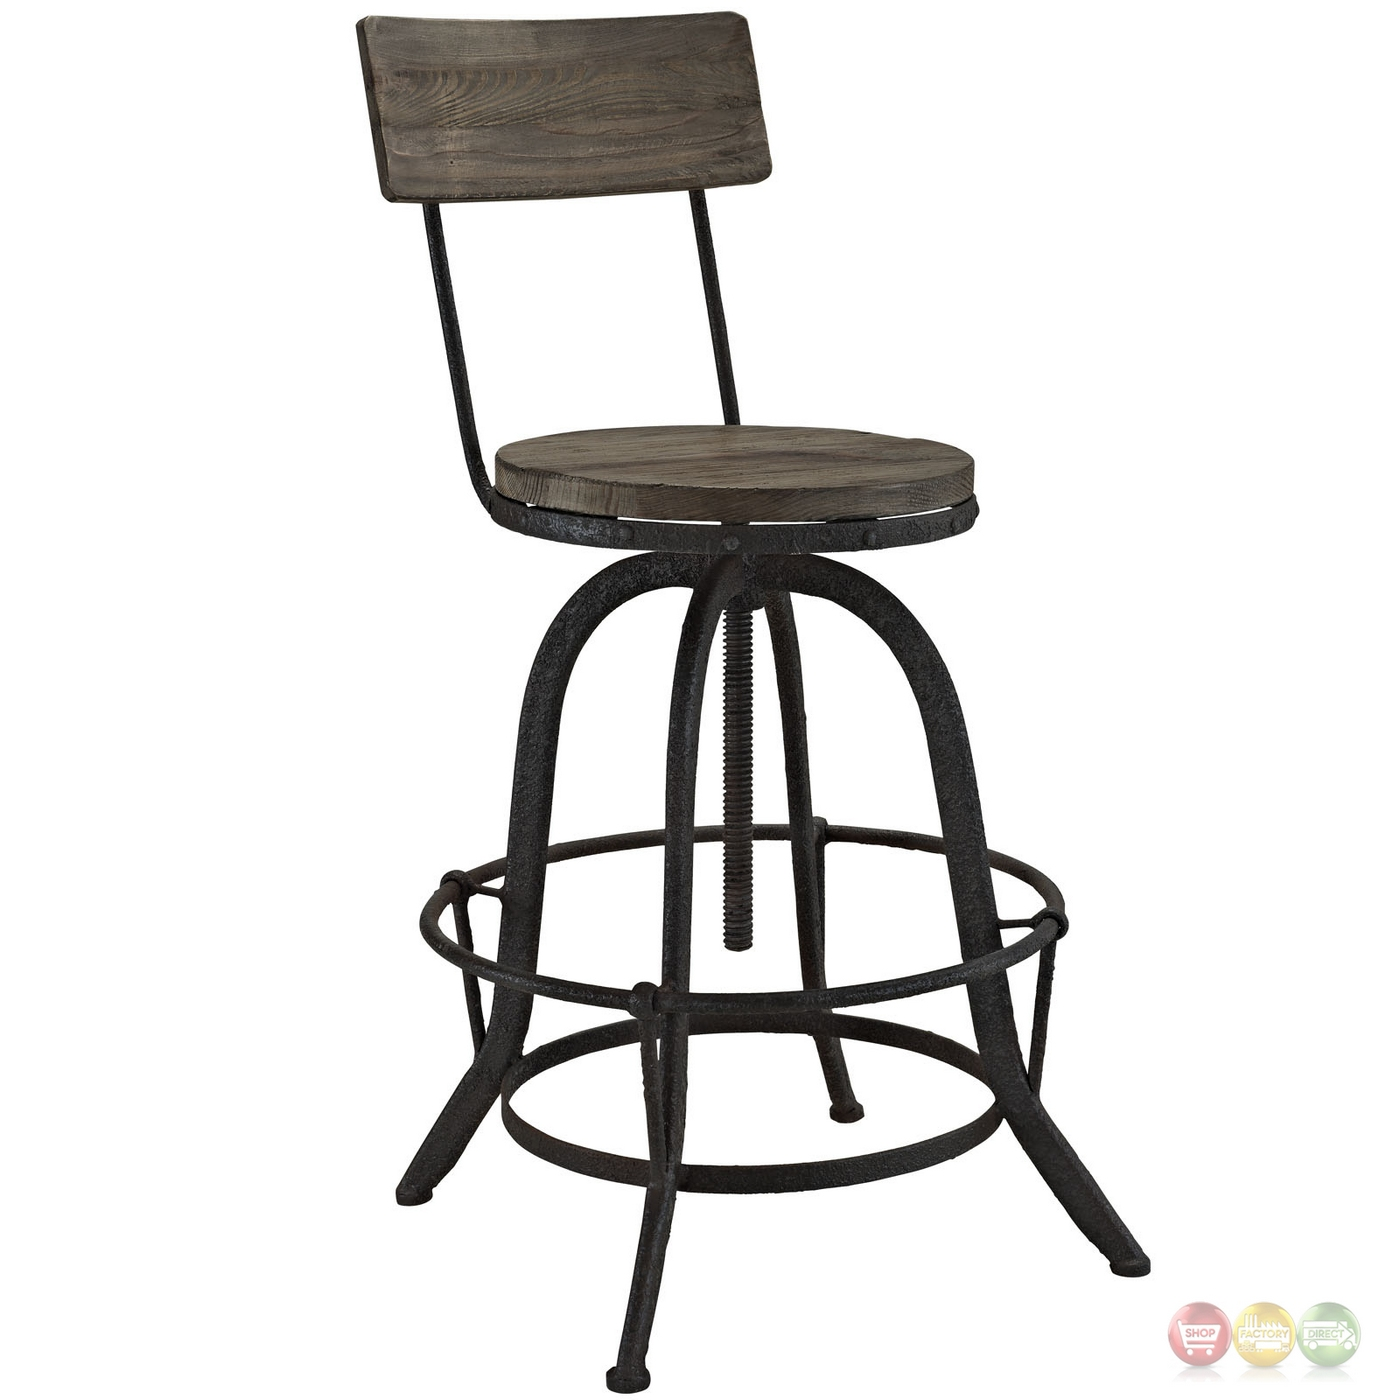 Set Of 2 Procure Industrial Bar Stool W Wood Seat Backs Cast Iron Frame Brown